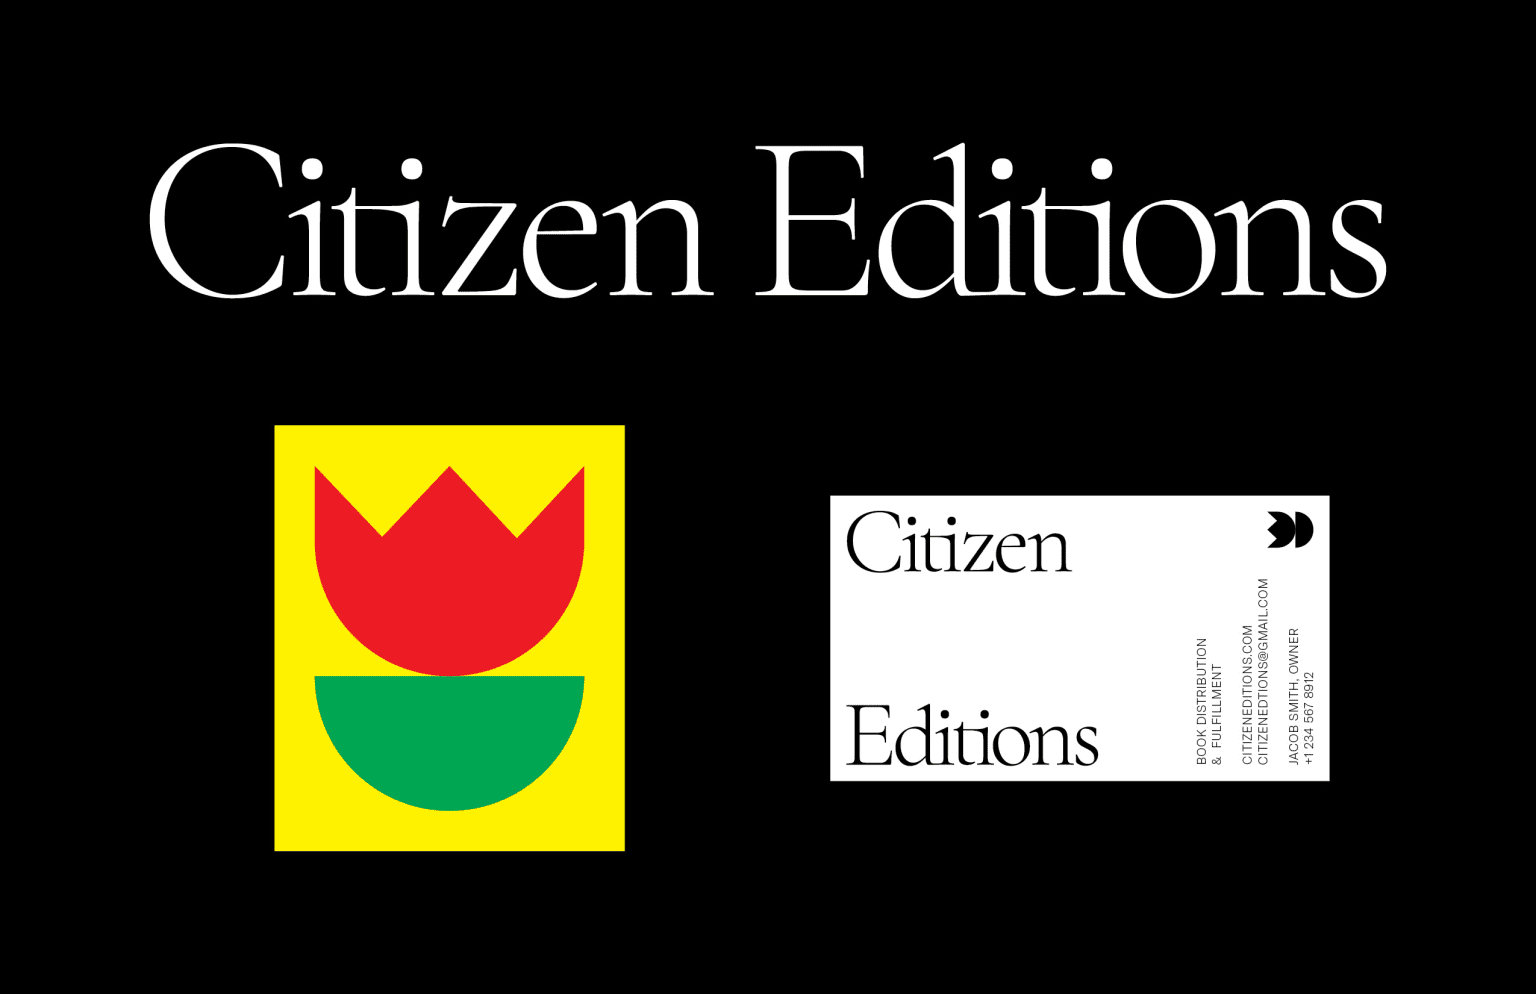 Citizen Editions Identity